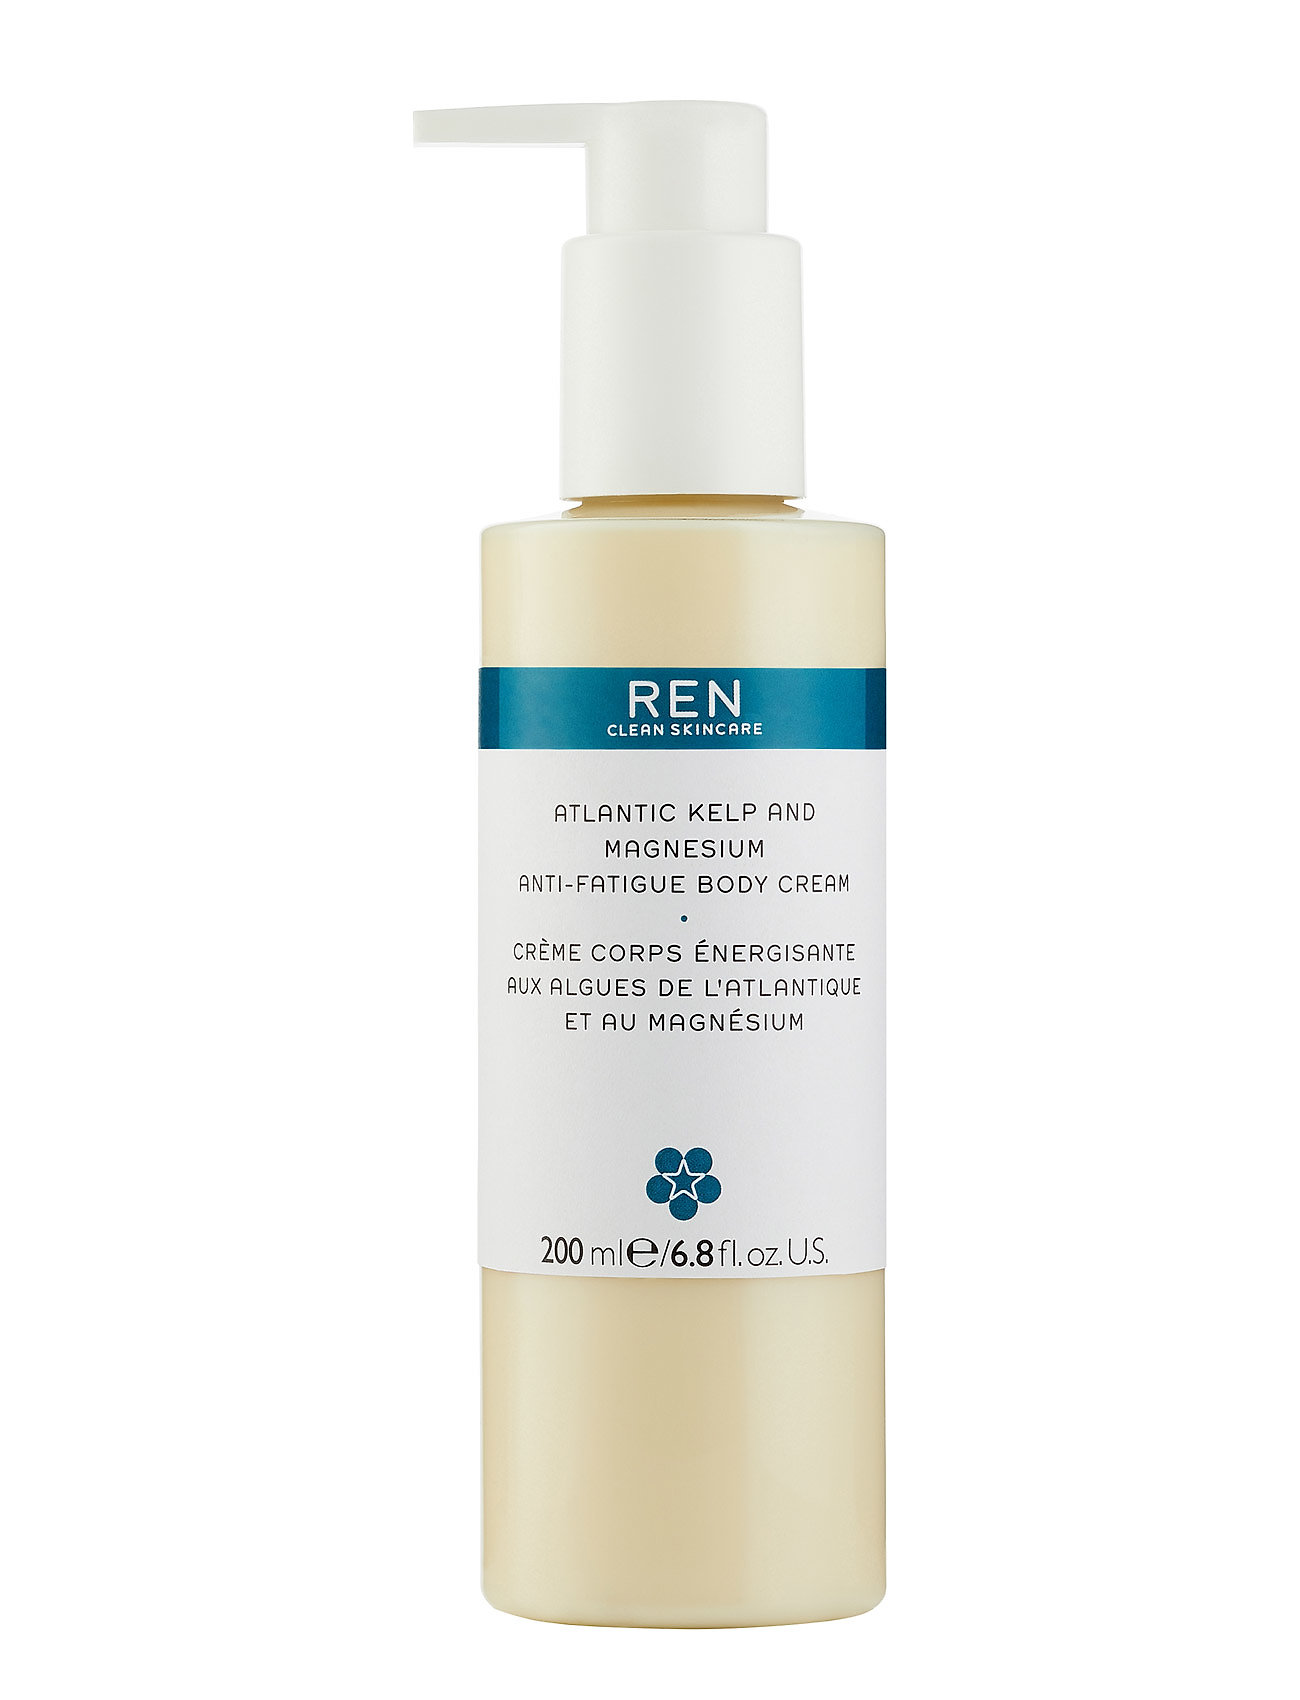 REN ATLANTIC KELP AND MAGNESIUM BODY CREAM 200 ml